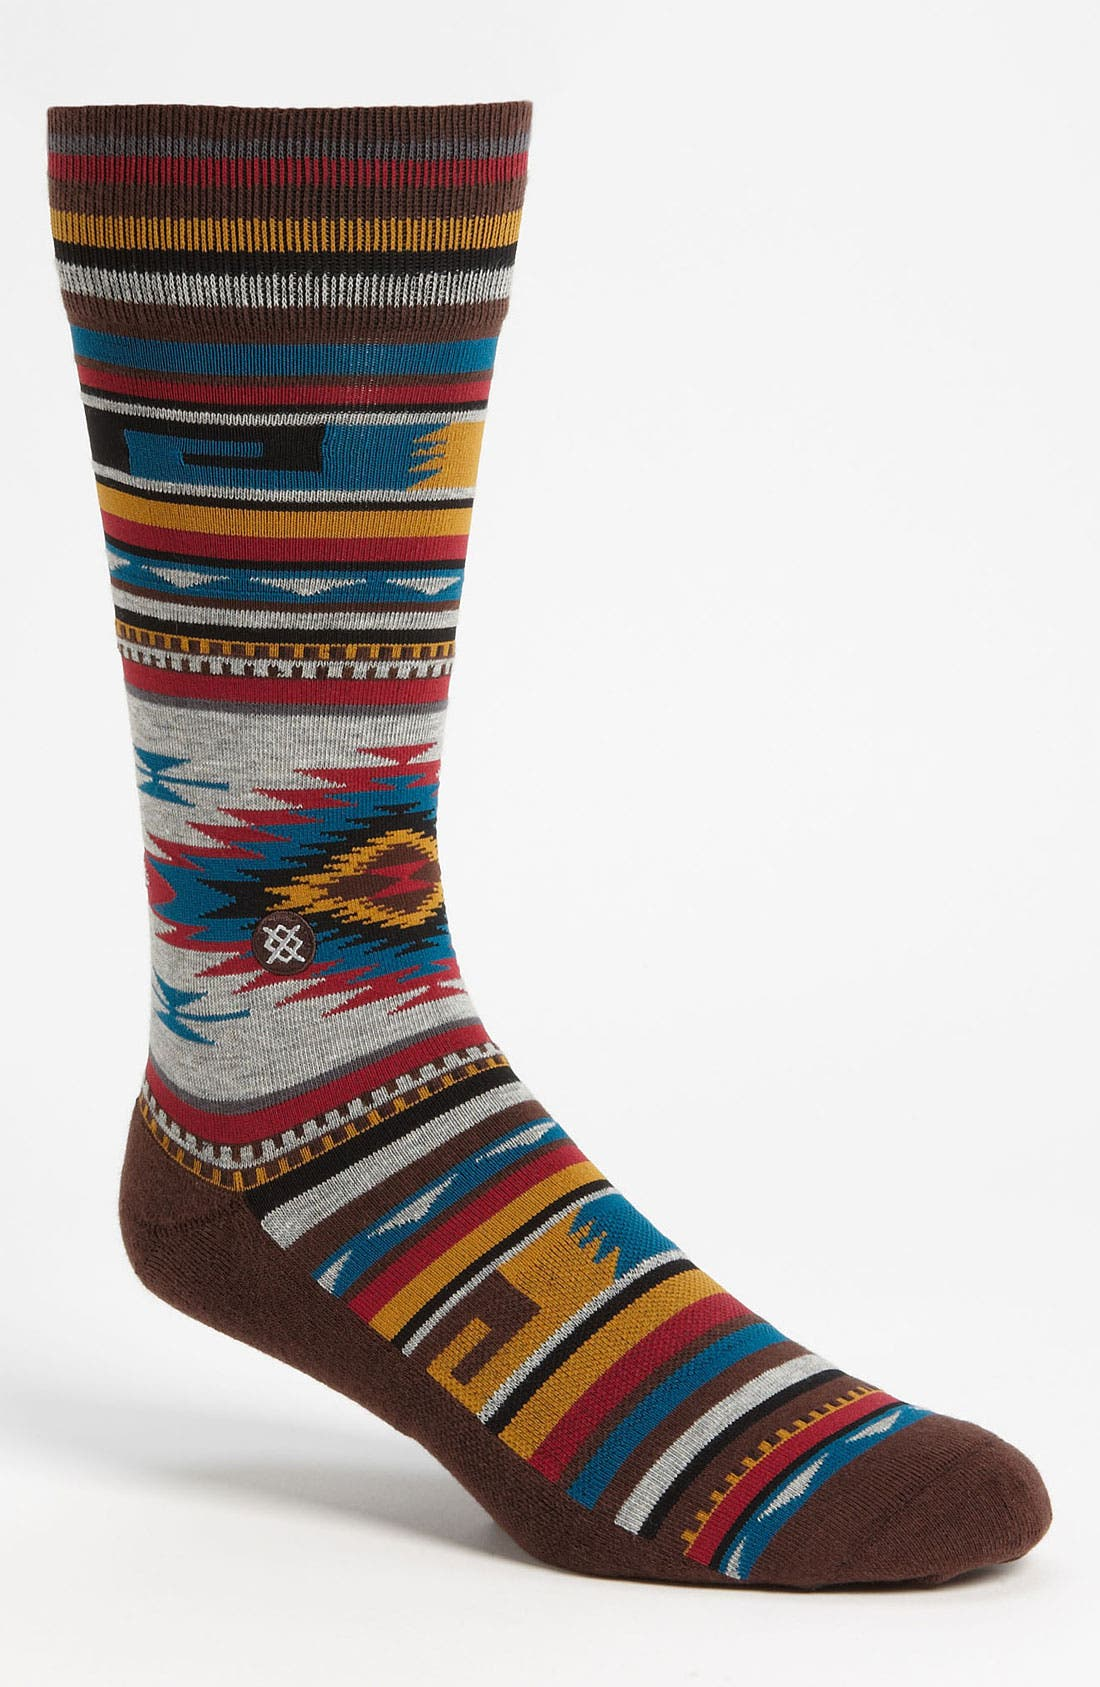 Main Image - Stance 'Outpost' Socks